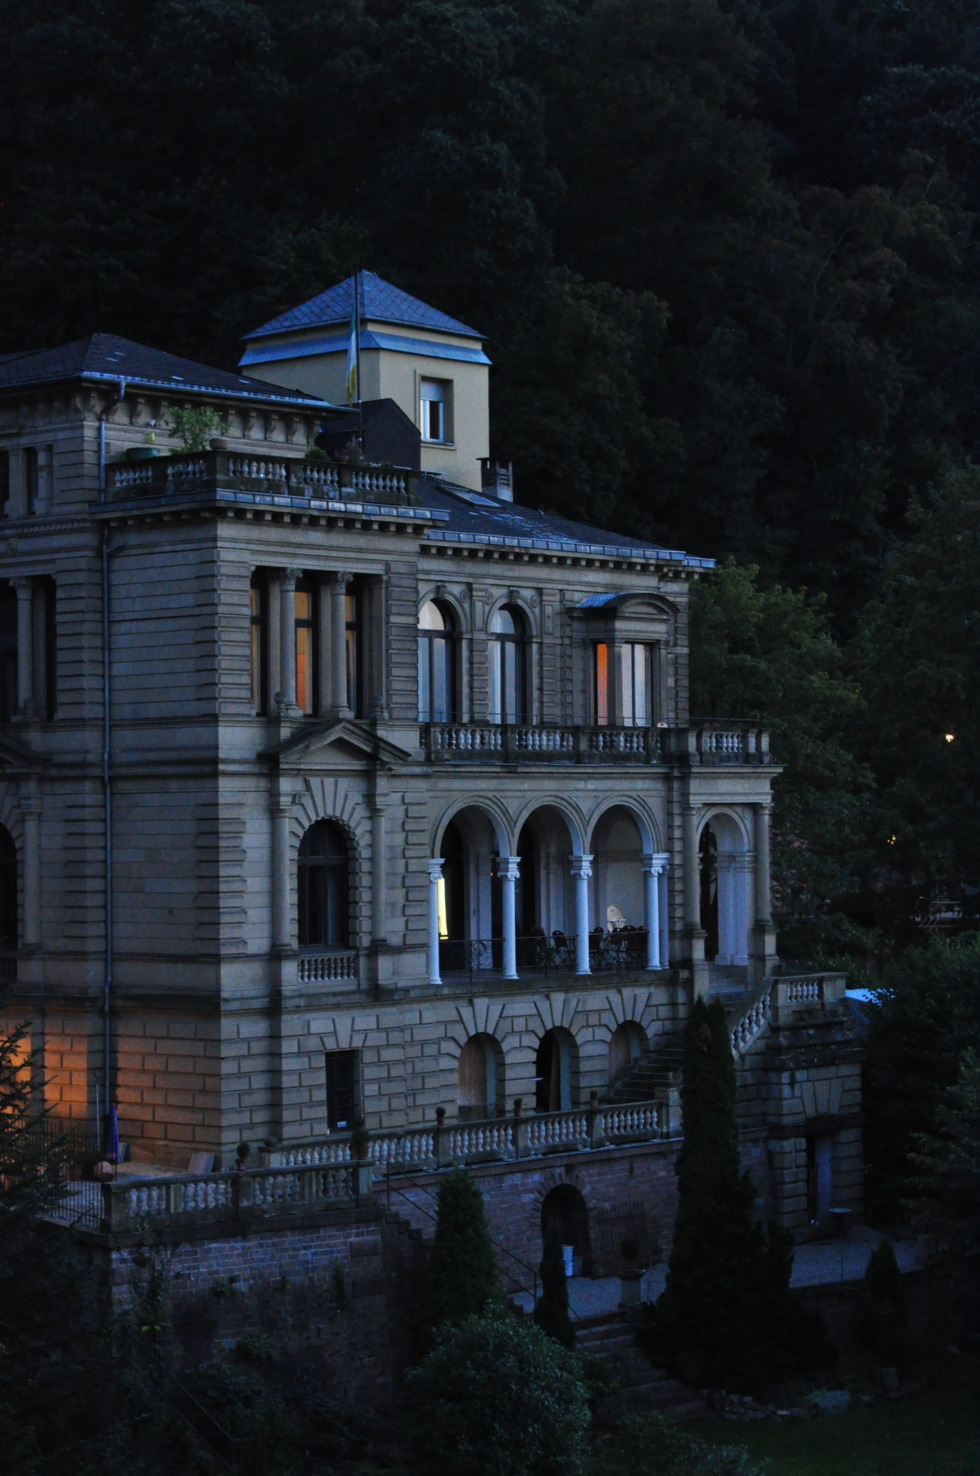 Impressive mansion on Heidelberg's hillside